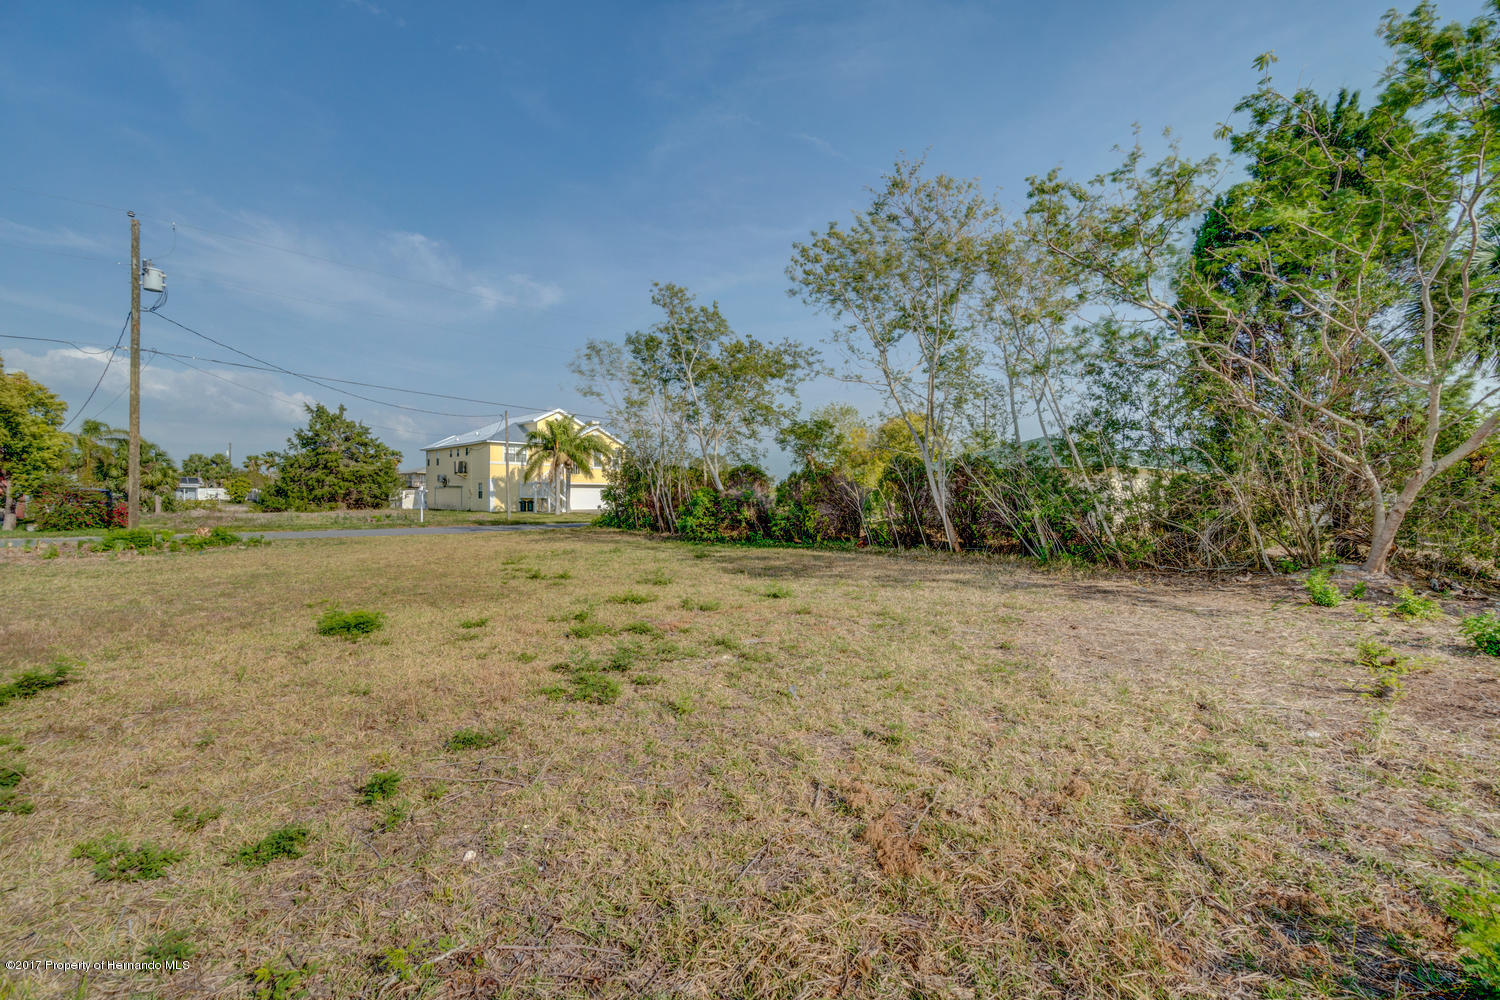 Lot 6 Diaz Ct (34)